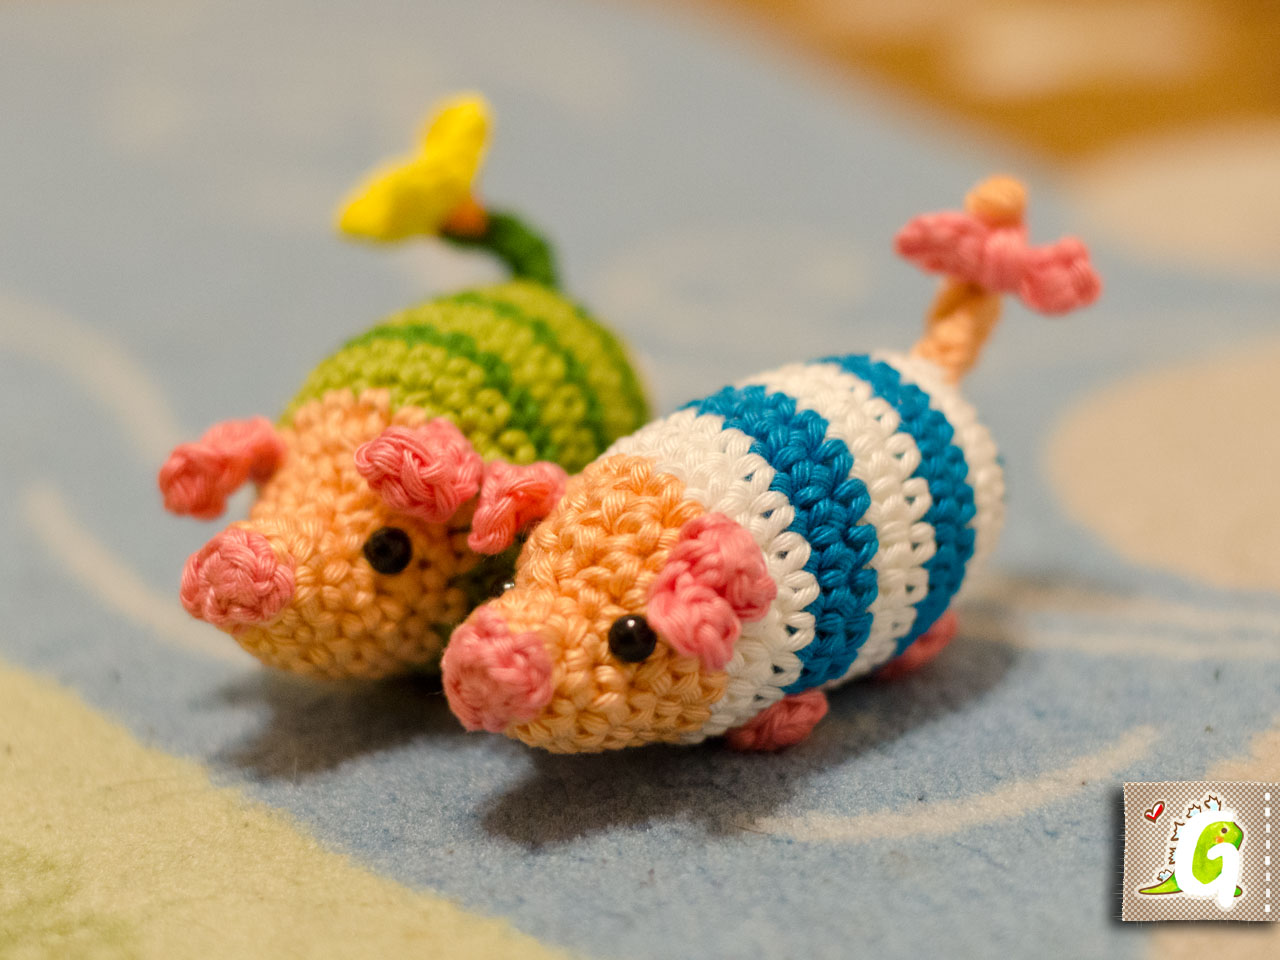 Monster World Garten Mehr Poogie Mehr Monster Hunter Amigurumi Groaaar By